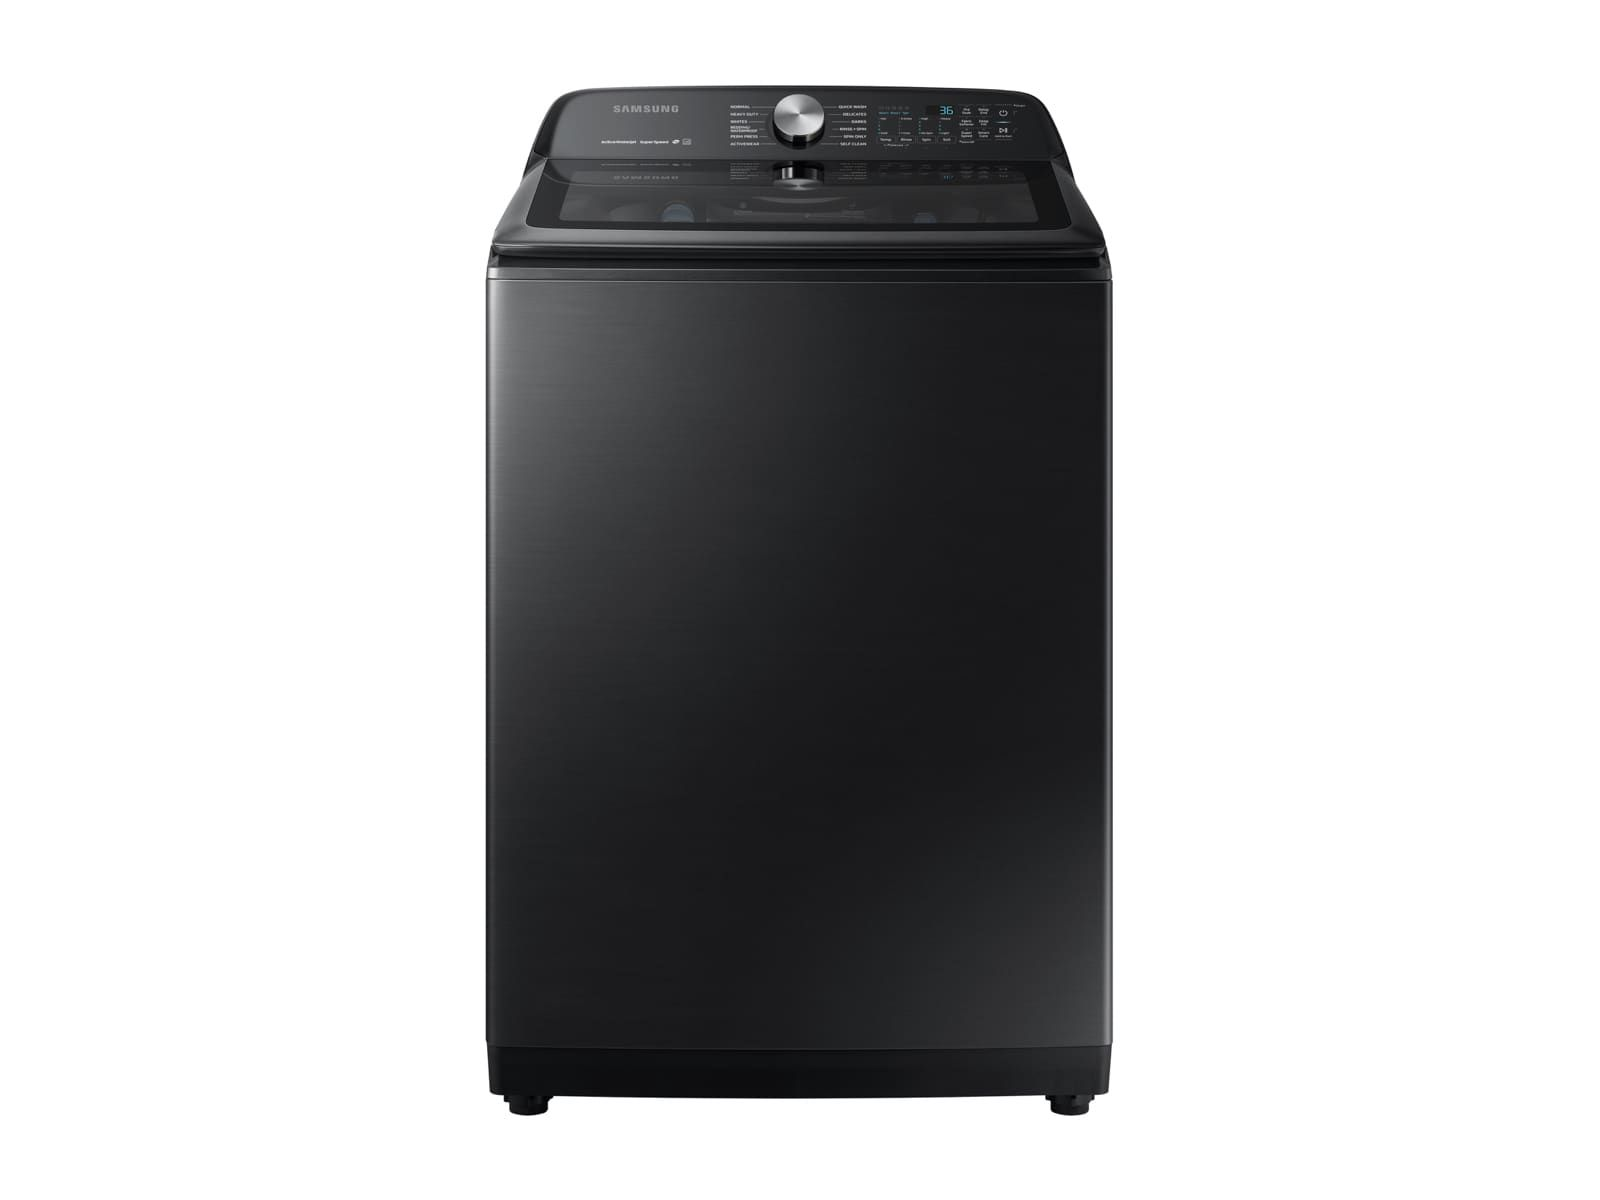 Samsung 5 0 Top Load Washer